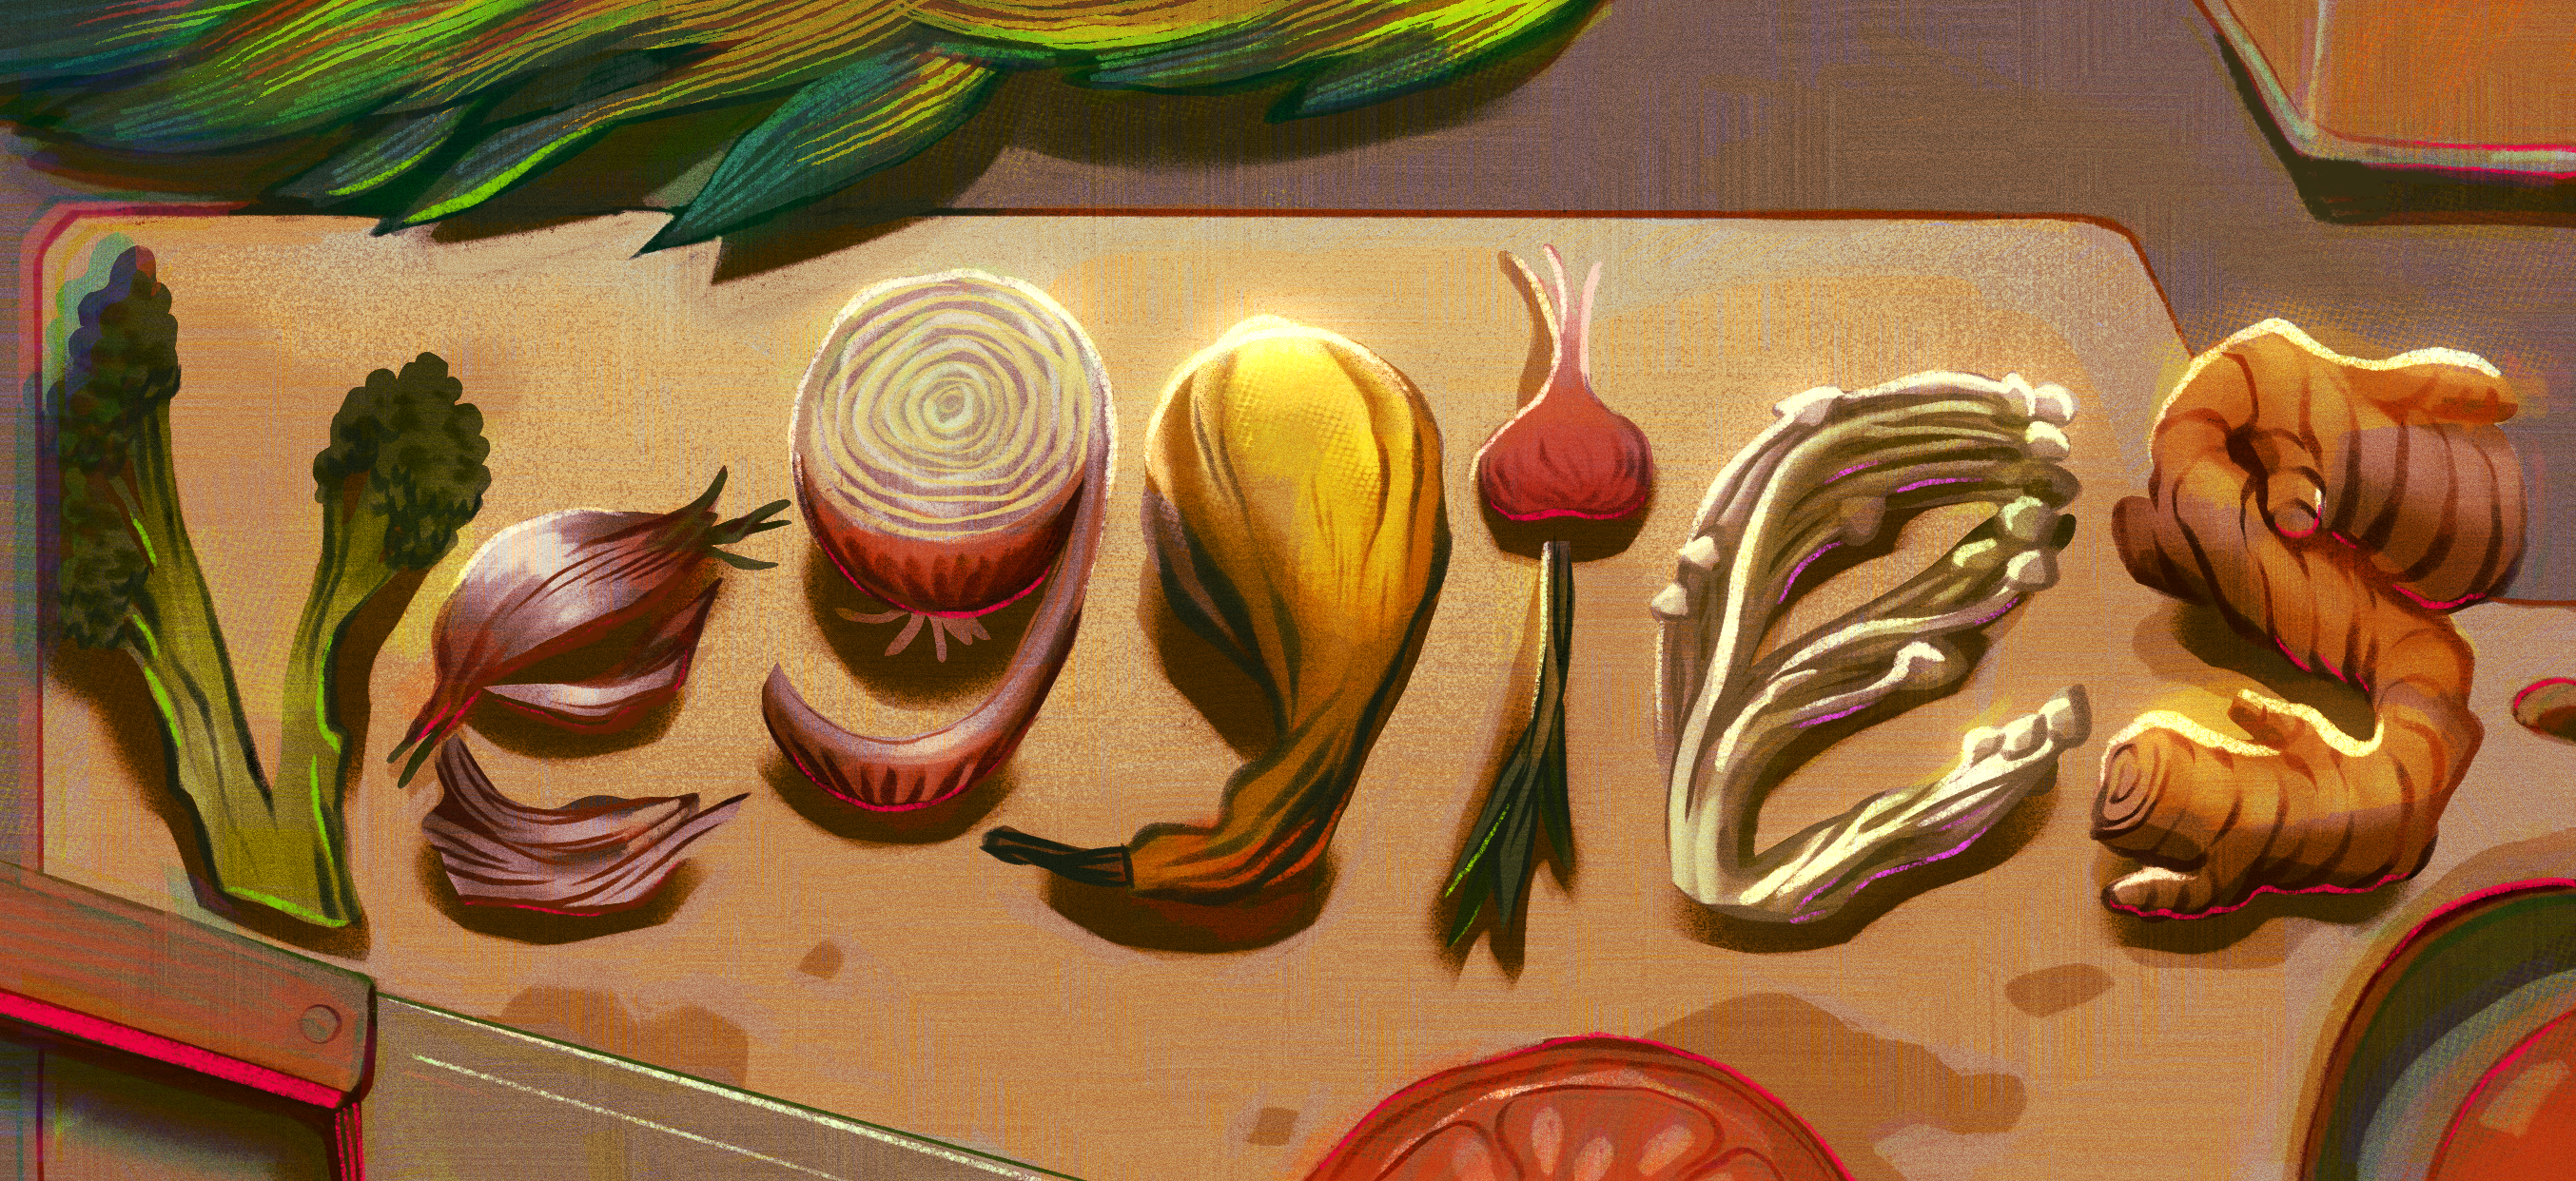 """A horizontal illustration of the word """"Veggies"""" made out of various vegetables, including from left to right broccoli, garlic, onion, squash, a turnip, enoki mushrooms, and ginger. It is displayed on a cutting board with various other cooking ut"""